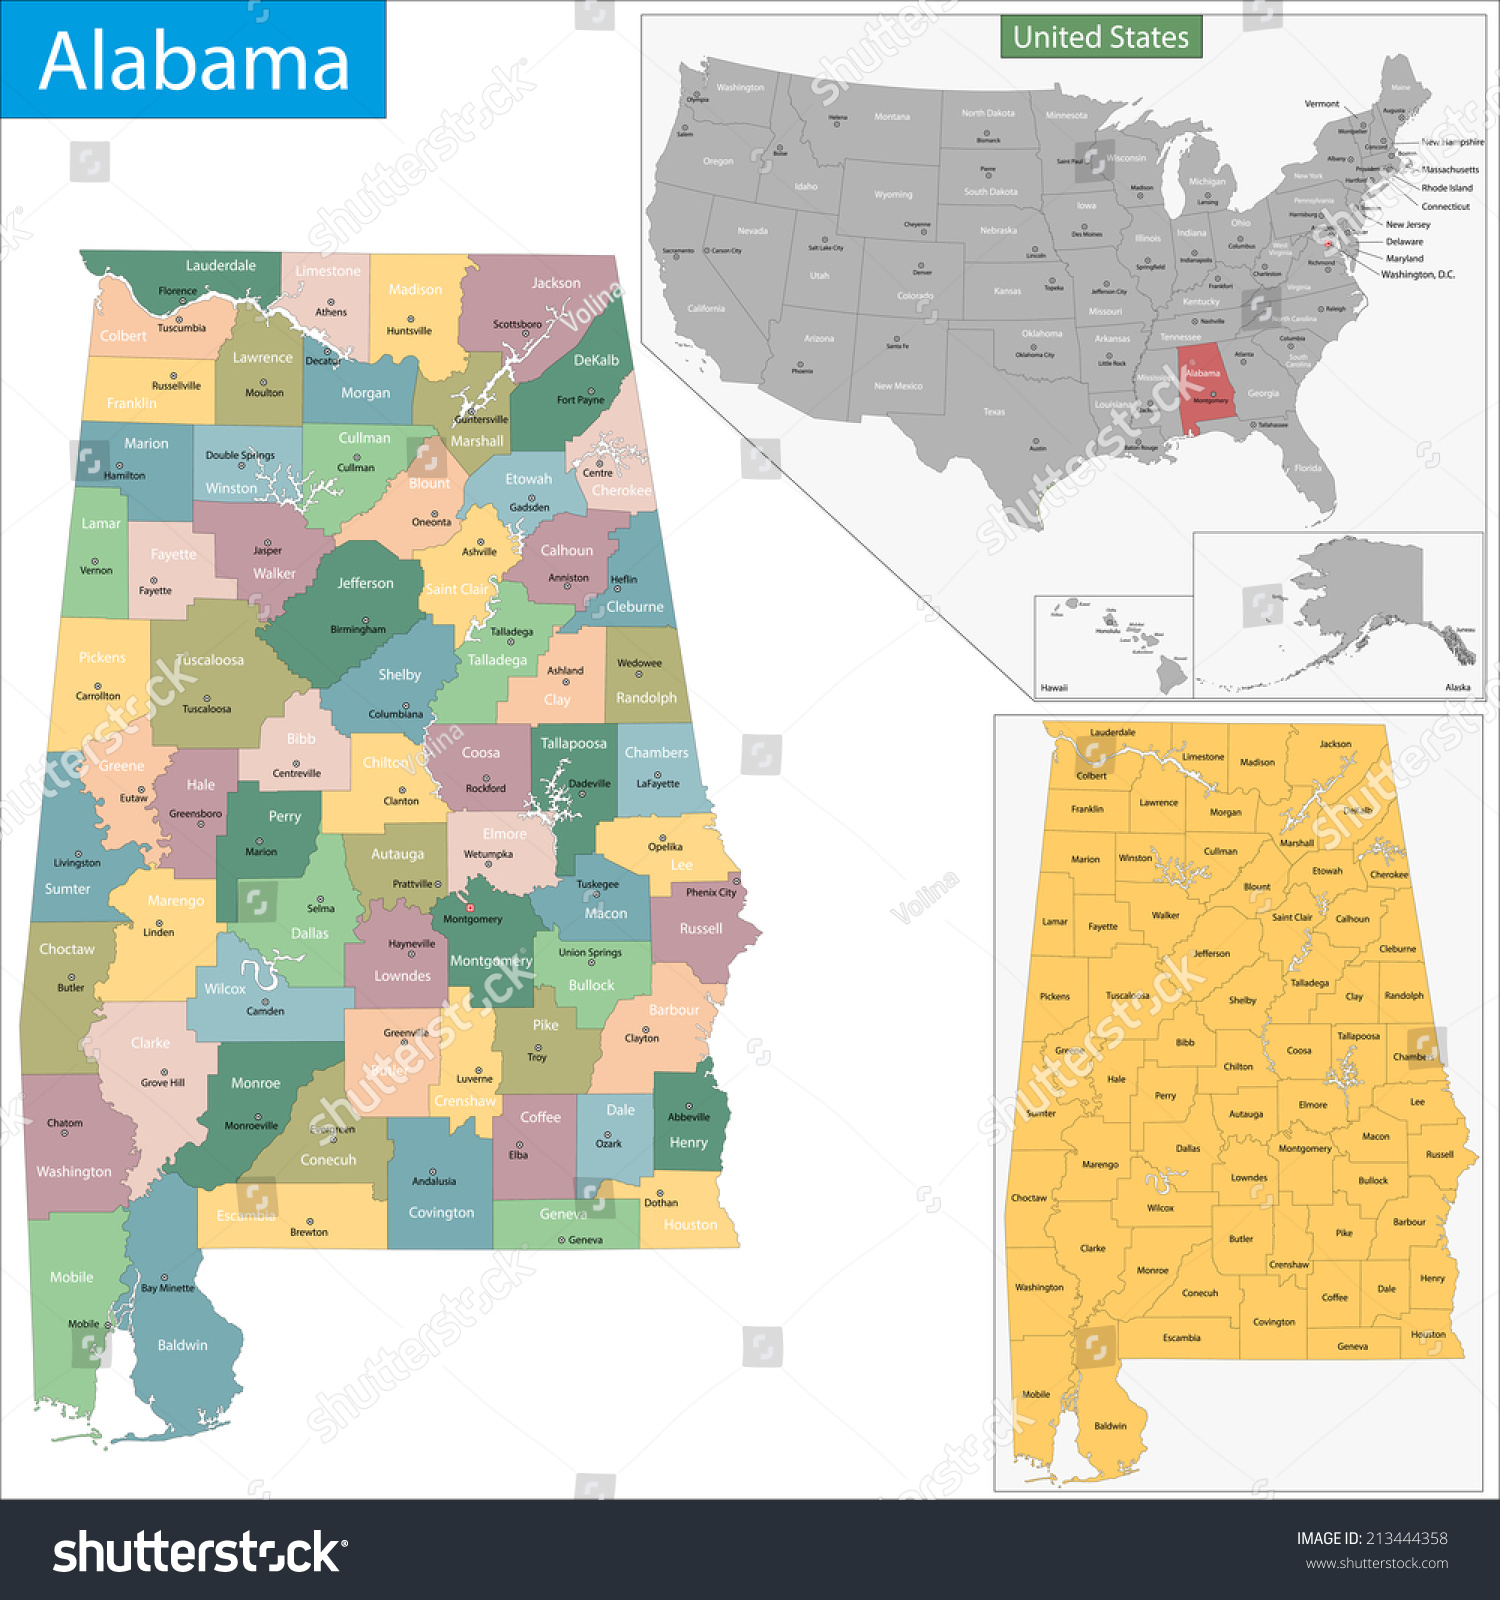 Map Alabama State Designed Illustration Counties Stock - Maps of alabama counties